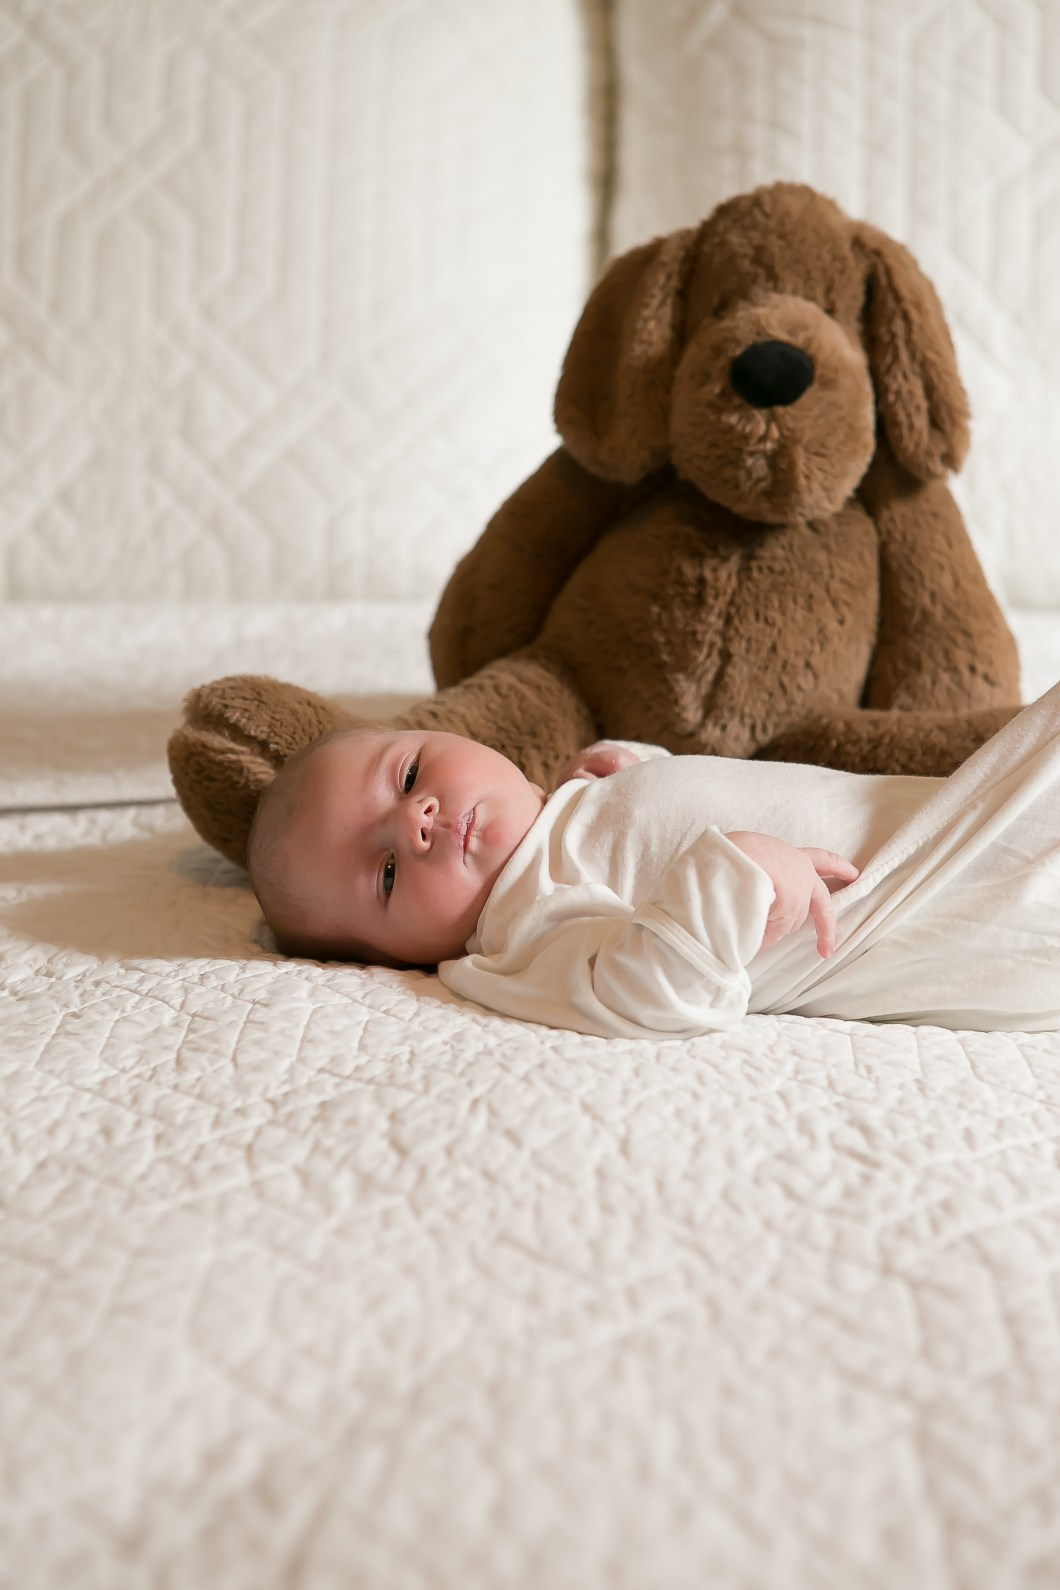 Atascocita Newborn Photographer